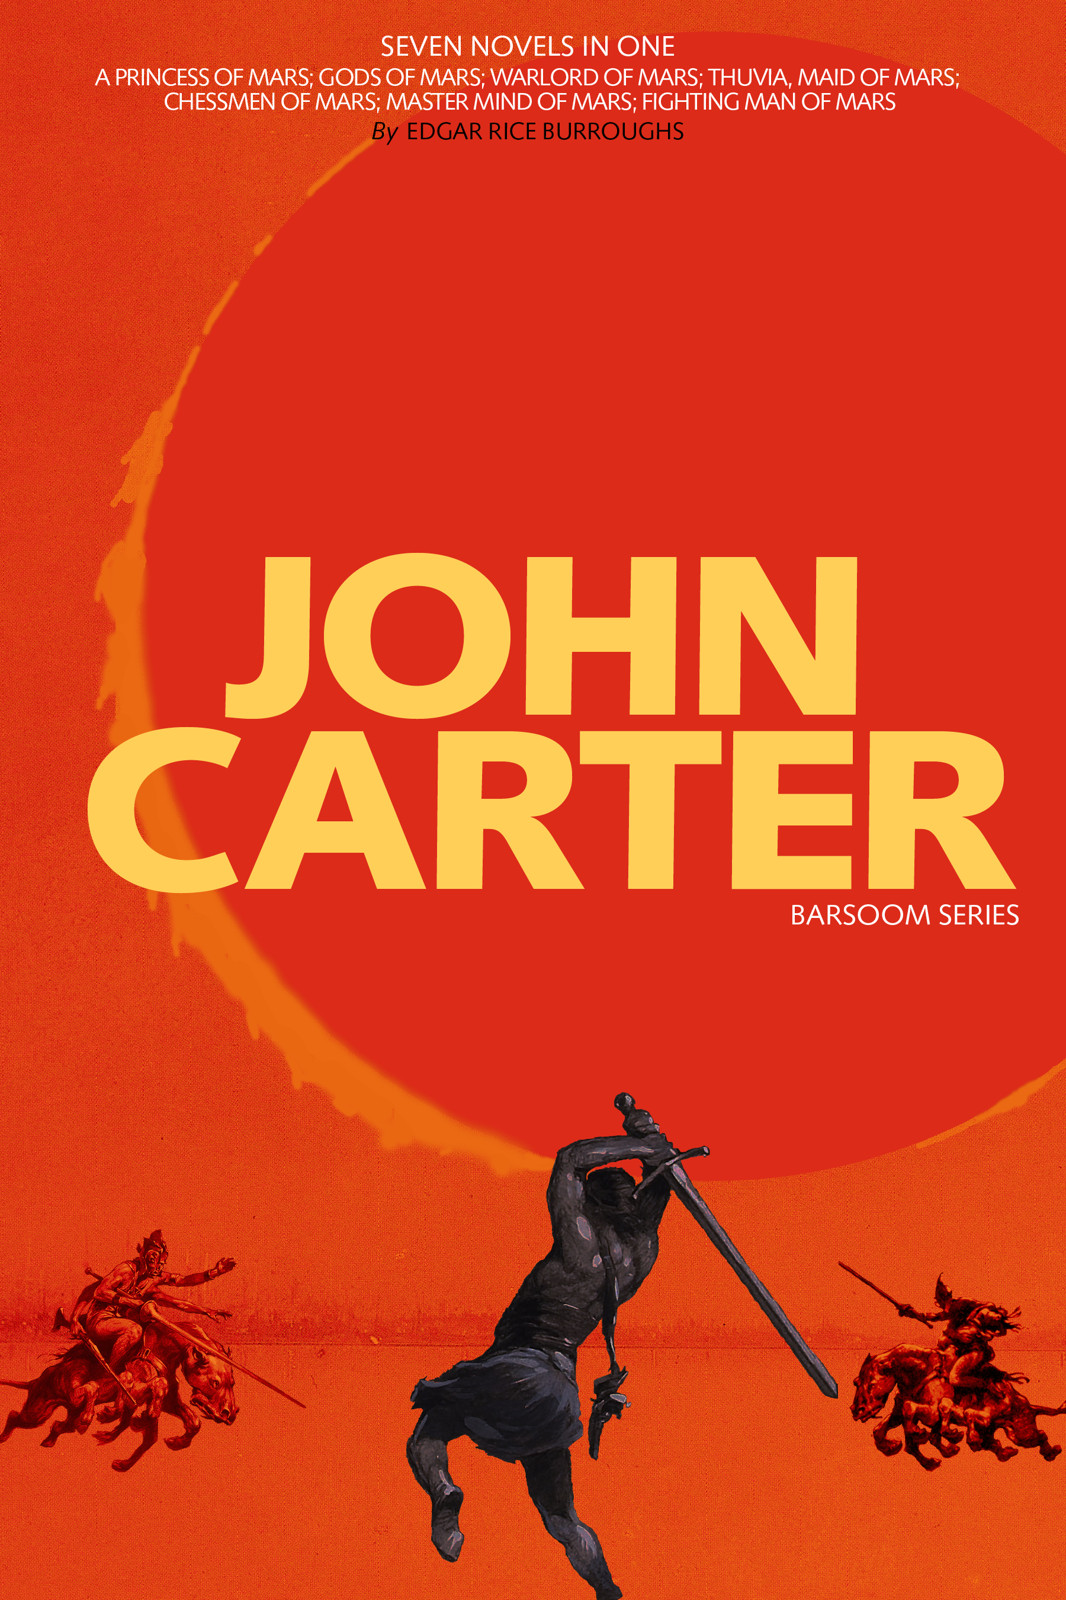 John Carter: Barsoom Series (7 Novels) A Princess of Mars; Gods of Mars; Warlord of Mars; Thuvia, Maid of Mars; Chessmen of Mars; Master Mind of Mars; Fighting Man of Mars (Science Fiction)